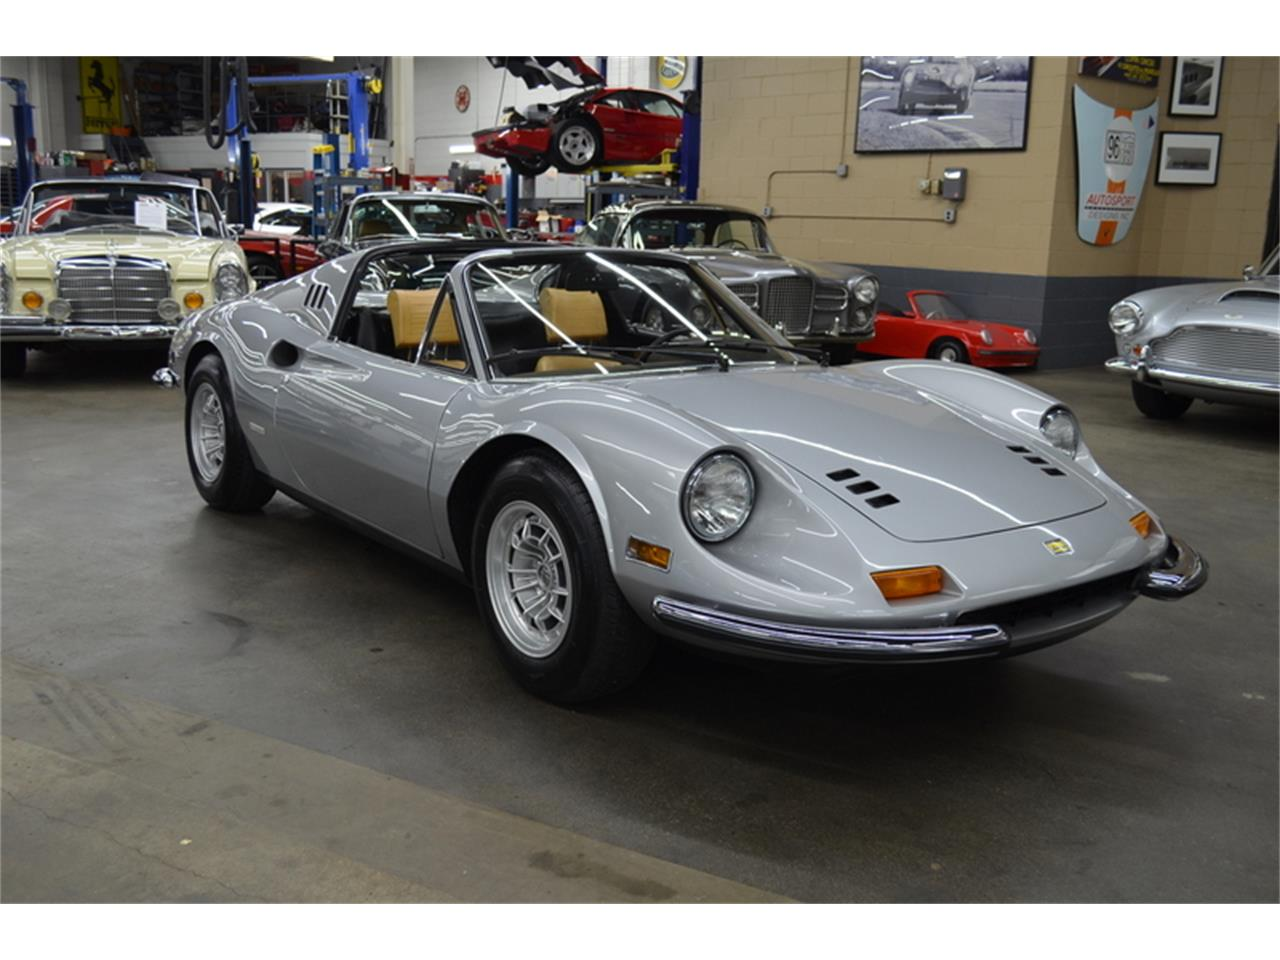 Large Picture of Classic '73 Ferrari Dino located in Huntington Station New York Auction Vehicle Offered by Autosport Designs Inc - Q4FZ